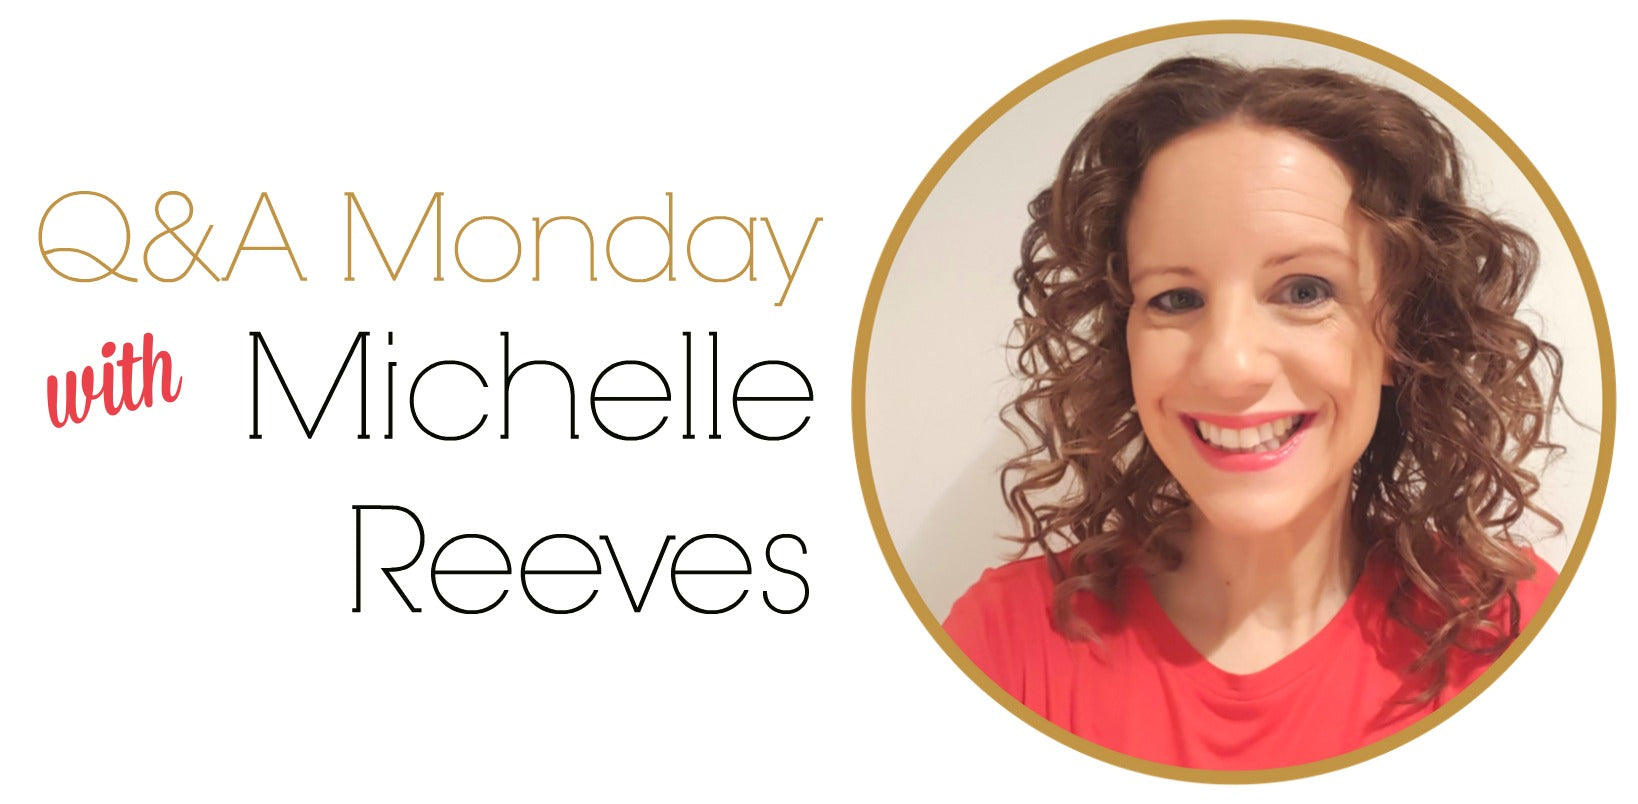 qa-monday-jennifer-hamley-meets-michelle-reeves-banner